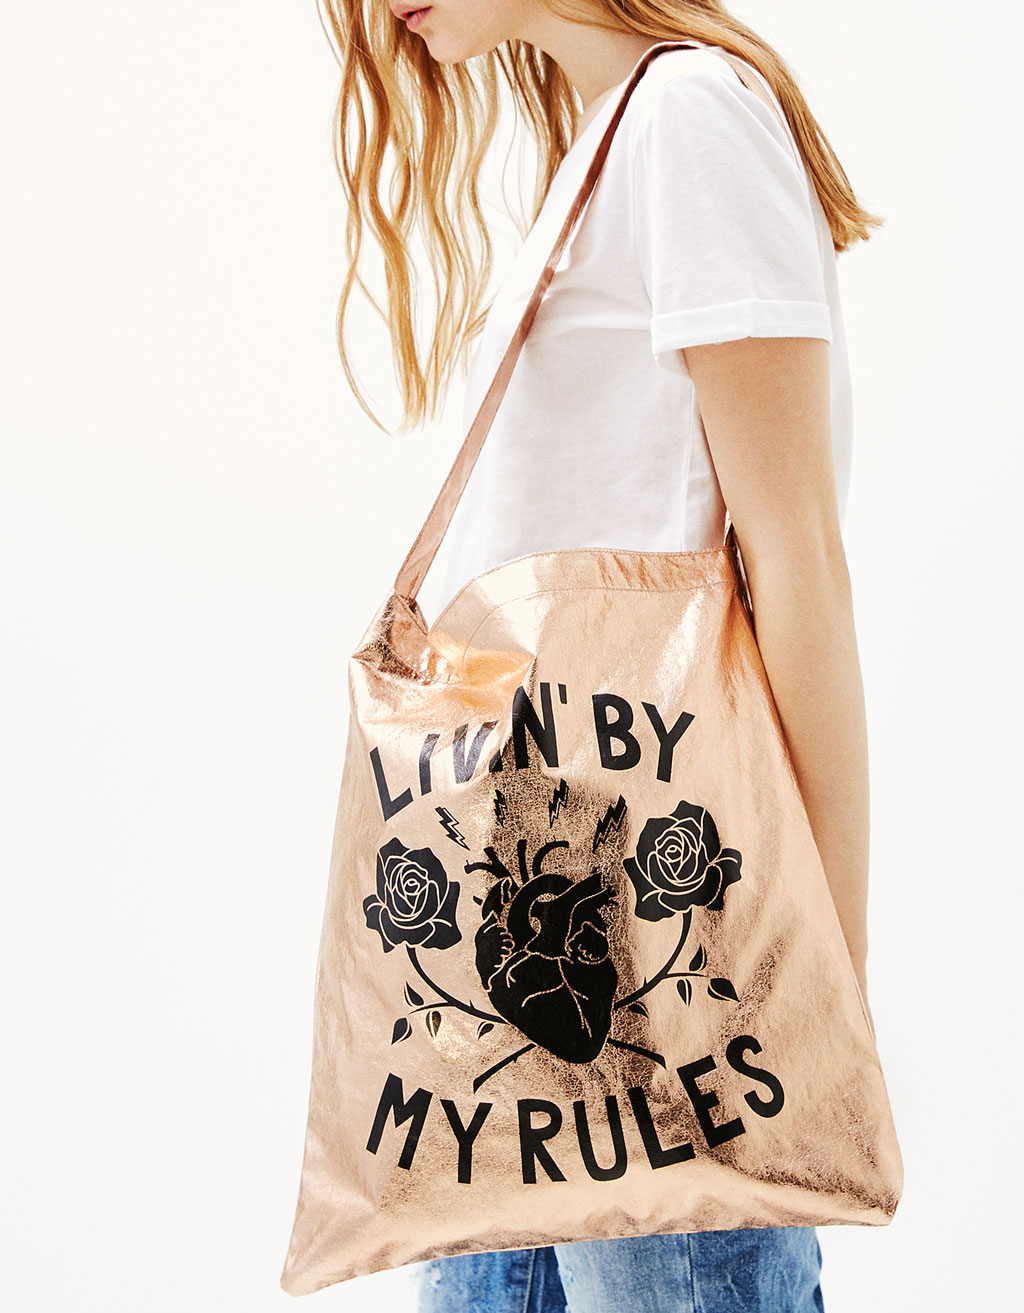 Shopper-laukku.Living by my rules'